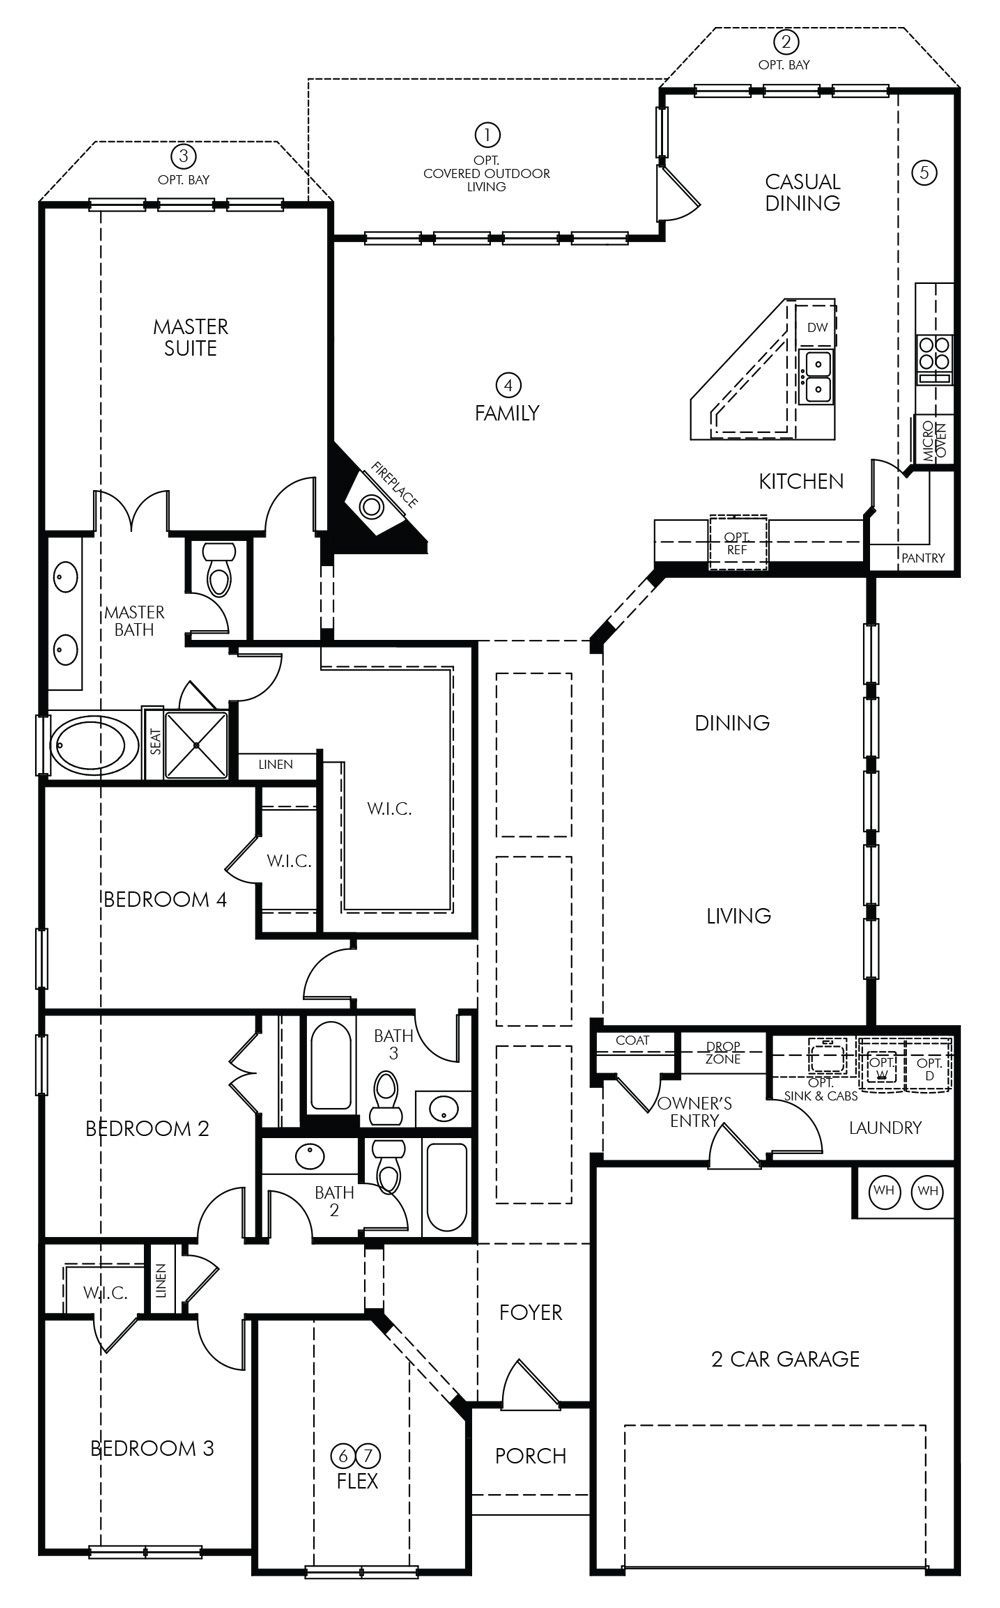 Our Favorite Biltmore By Meritage Homes From 326 990 As Of Aug 21 2016 Canyon Falls Dfw Texas House Floor Plans Floor Plans How To Plan